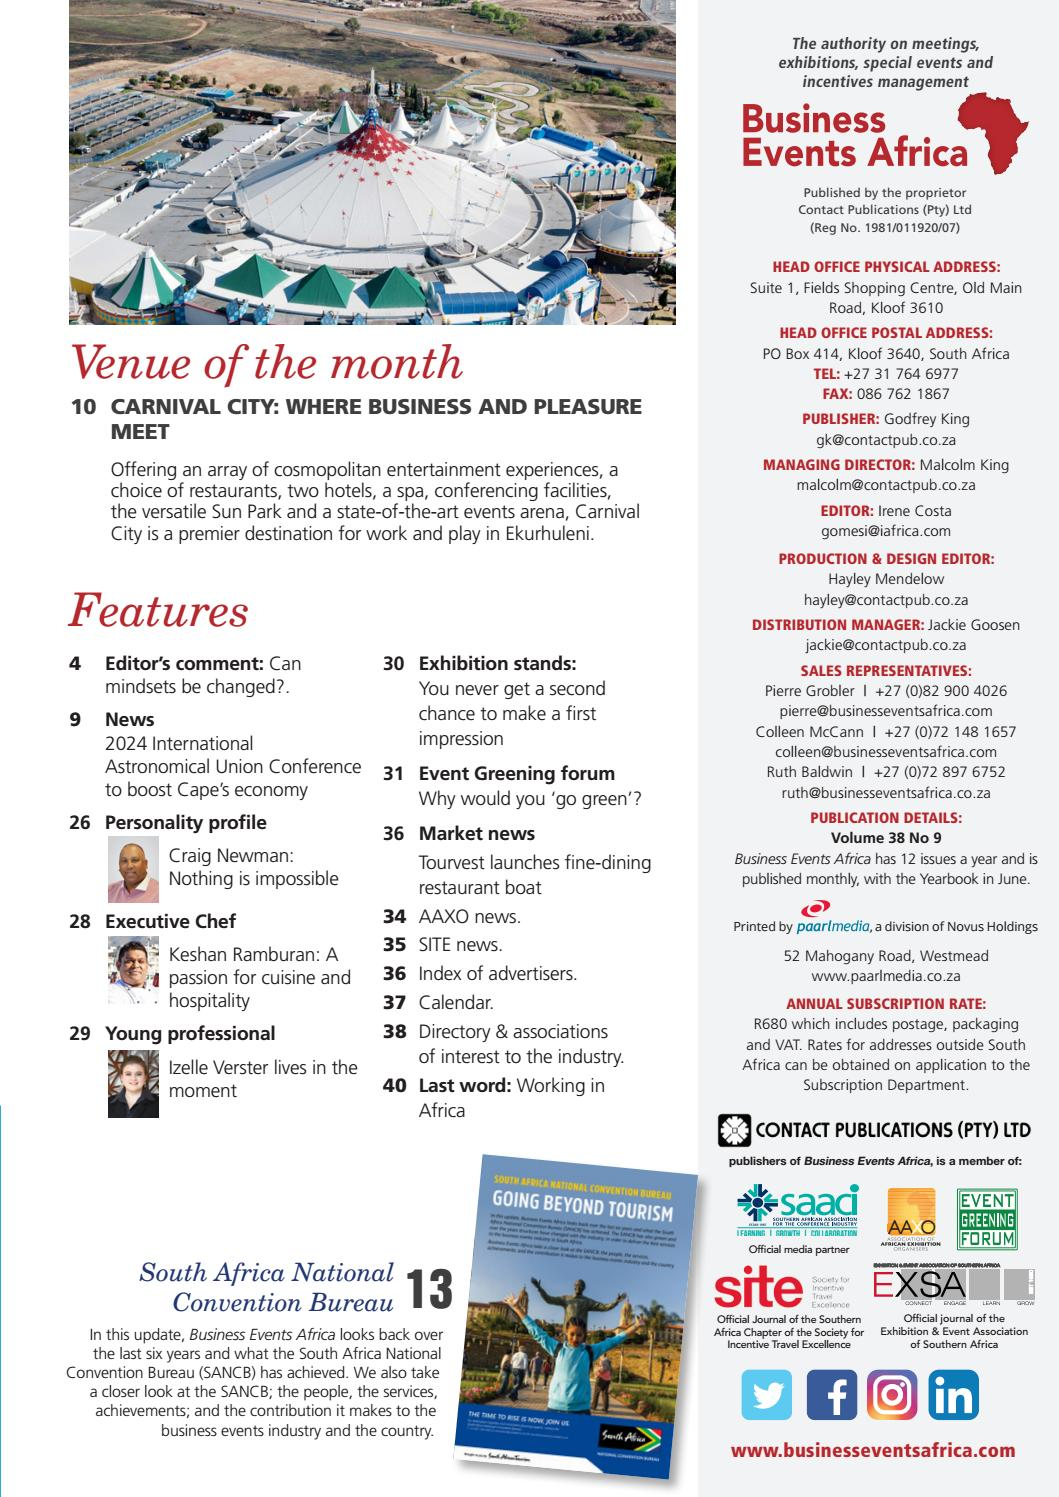 Business Events Africa September 2018 Vol 38 No 9 by Contact